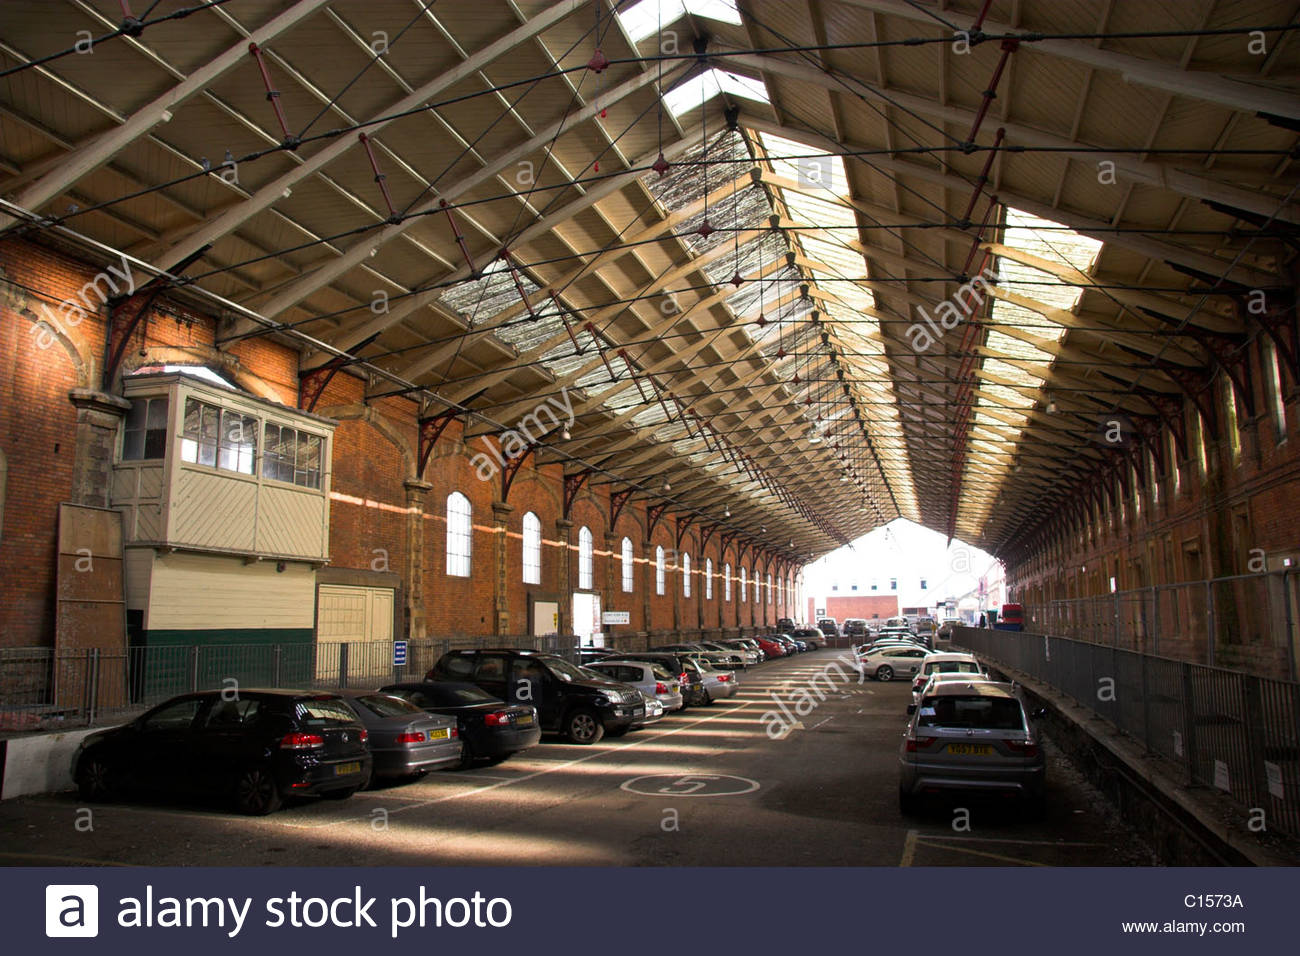 Inside the original Temple Meads railway station, the extended train shed section with the old signal box visible, Stock Photo